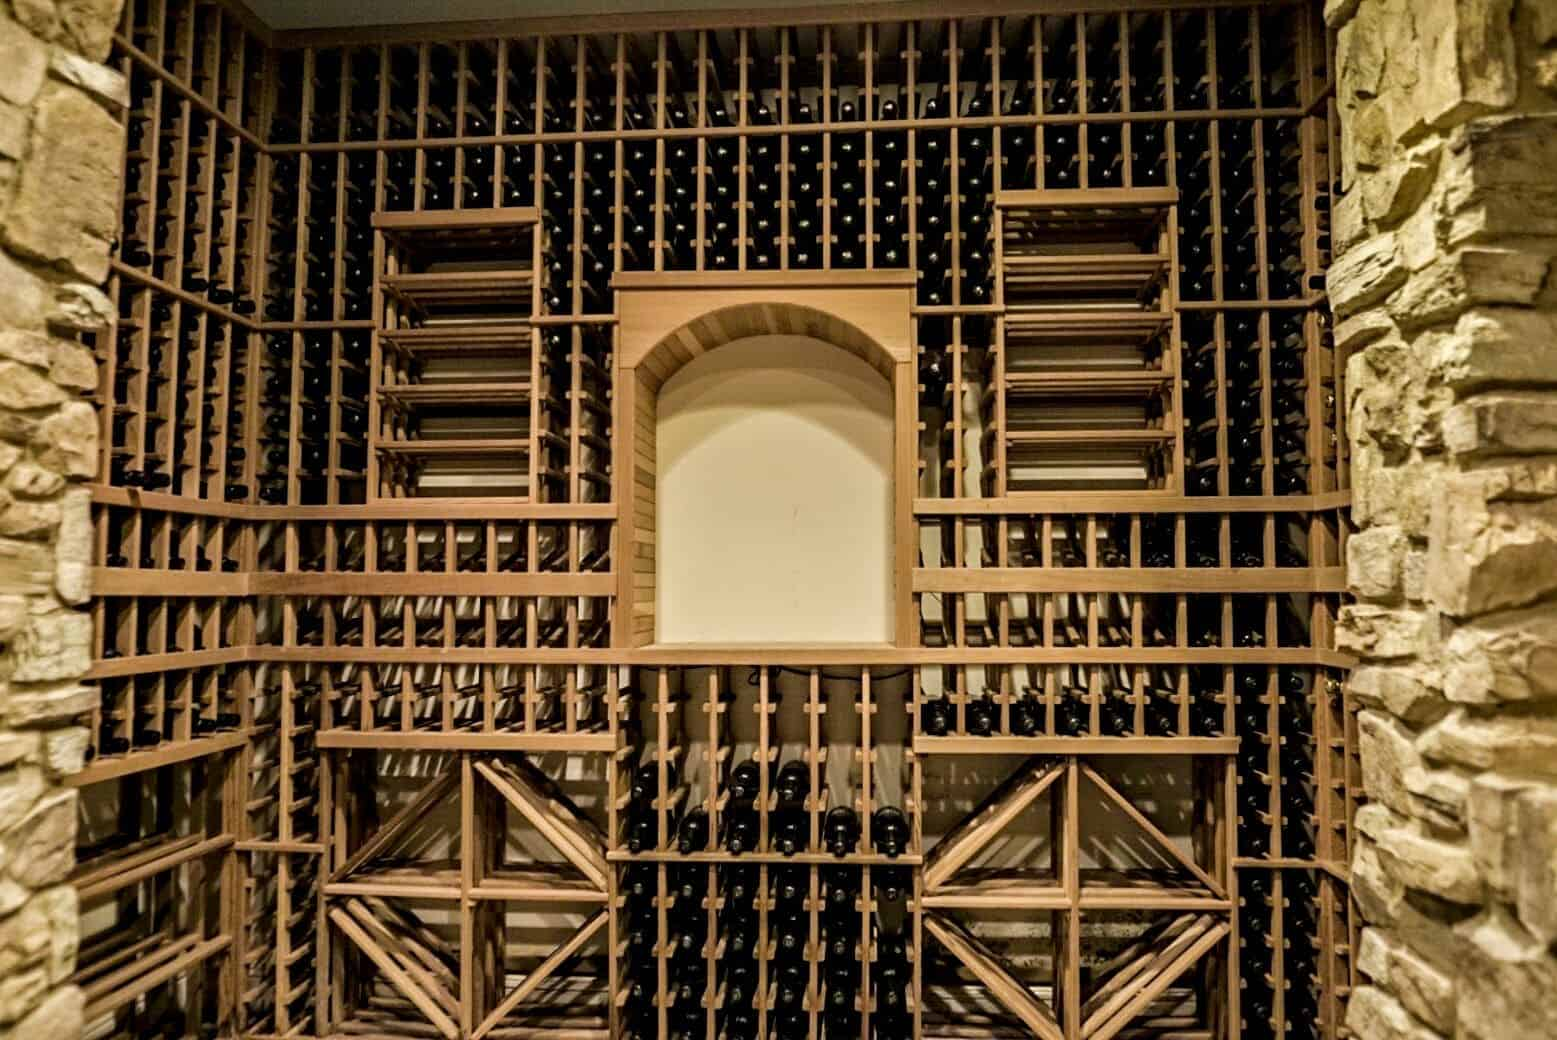 A closer look at the wine cellar's amazing wine racks that can store hundreds of bottles. Images courtesy of Toptenrealestatedeals.com.